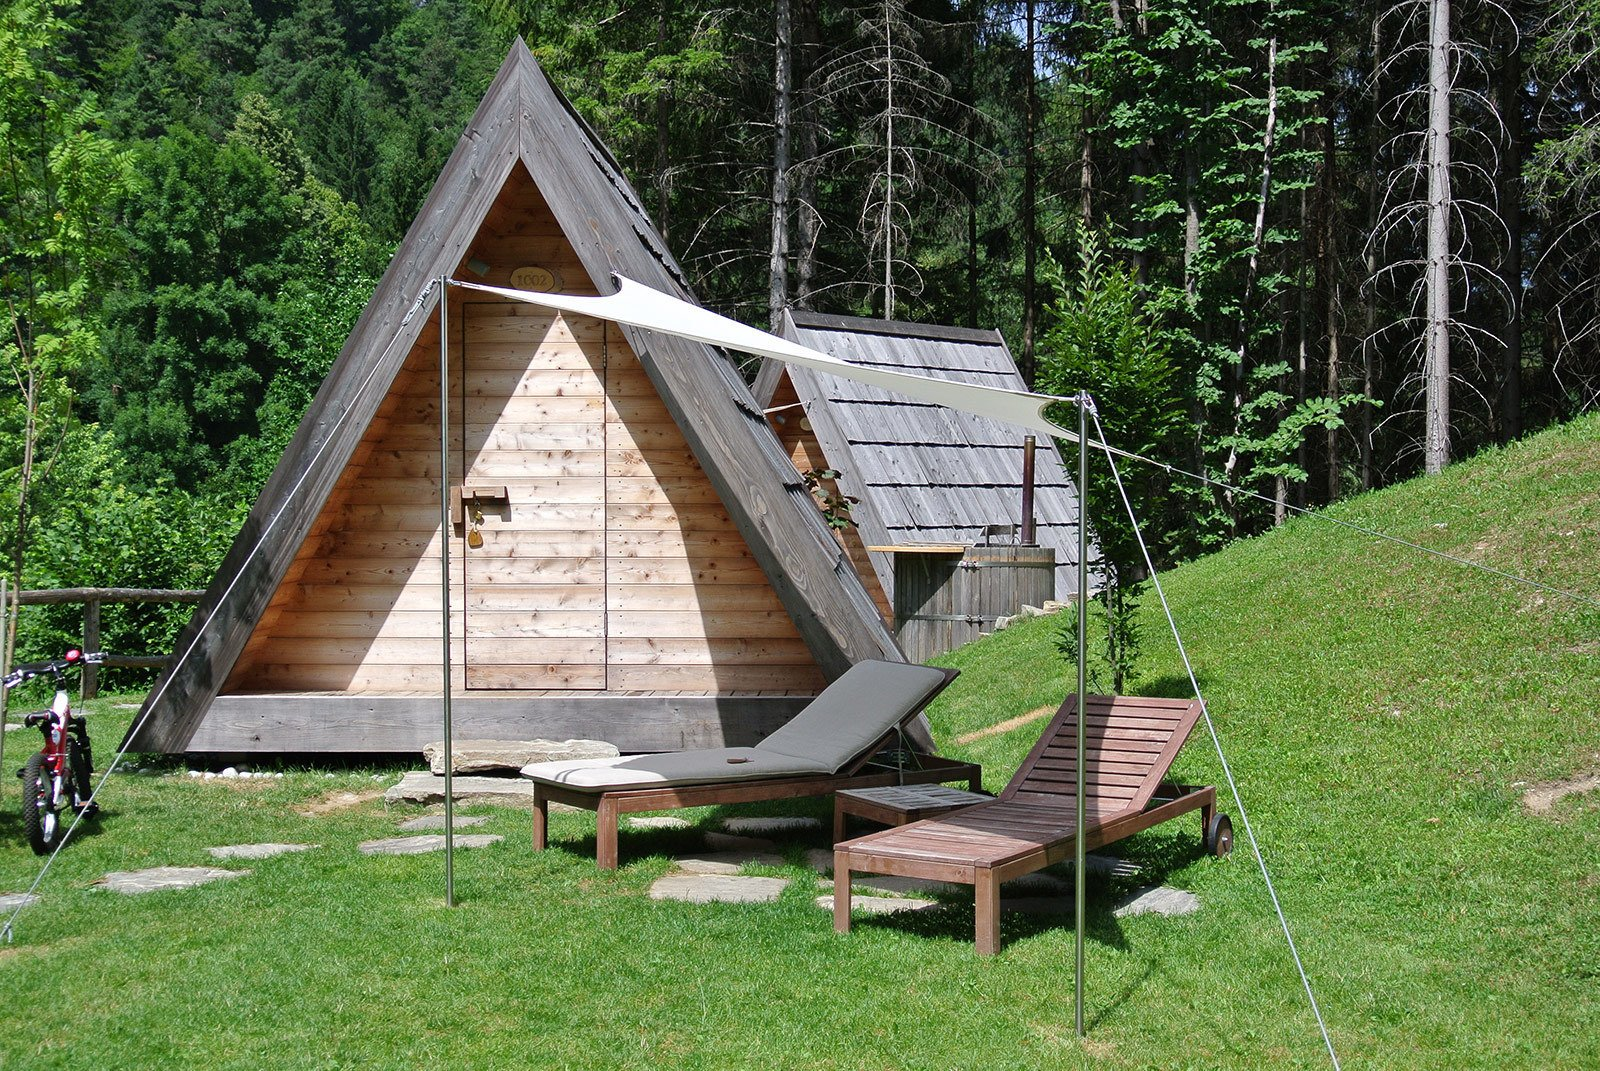 Lushna's dwellings are available in Europe and the U.S., though for customers in the latter, prices can vary based on shipping costs and taxes. The baseline price of Villa Massive, seen here, is approximately $9,375. The canvas-lined Villa Air's is $4,453. To see Lushna's full range of products, visit their website here!  Off the grid by Michela O'Connor Abrams from The Prefab Glamping Experience You've Been Waiting For